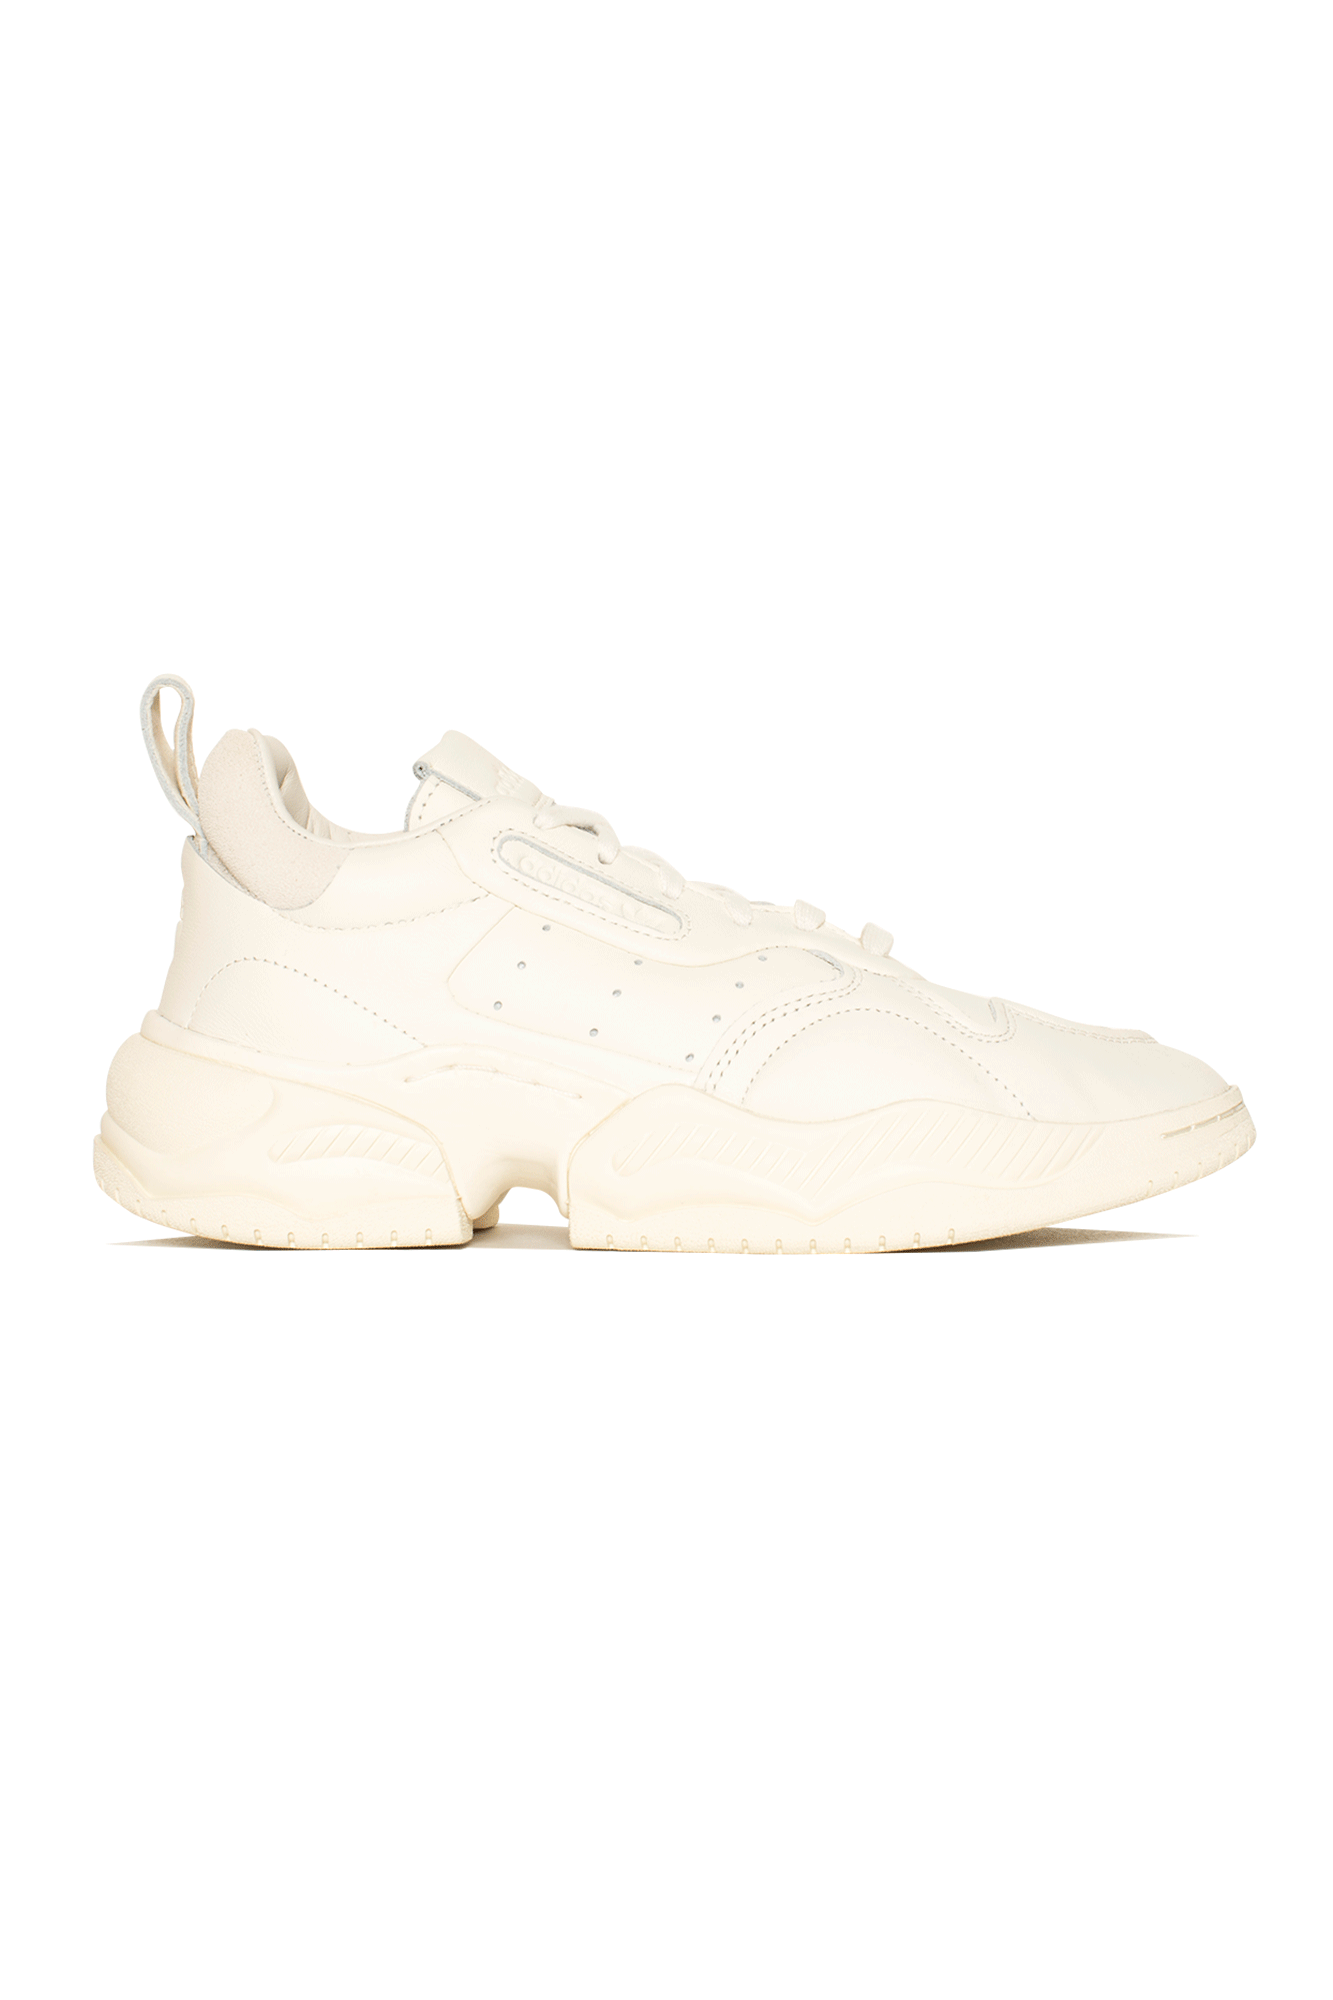 Adidas Originals Sneakers Supercourt RX White EG6864#000#WHITE#5 - One Block Down